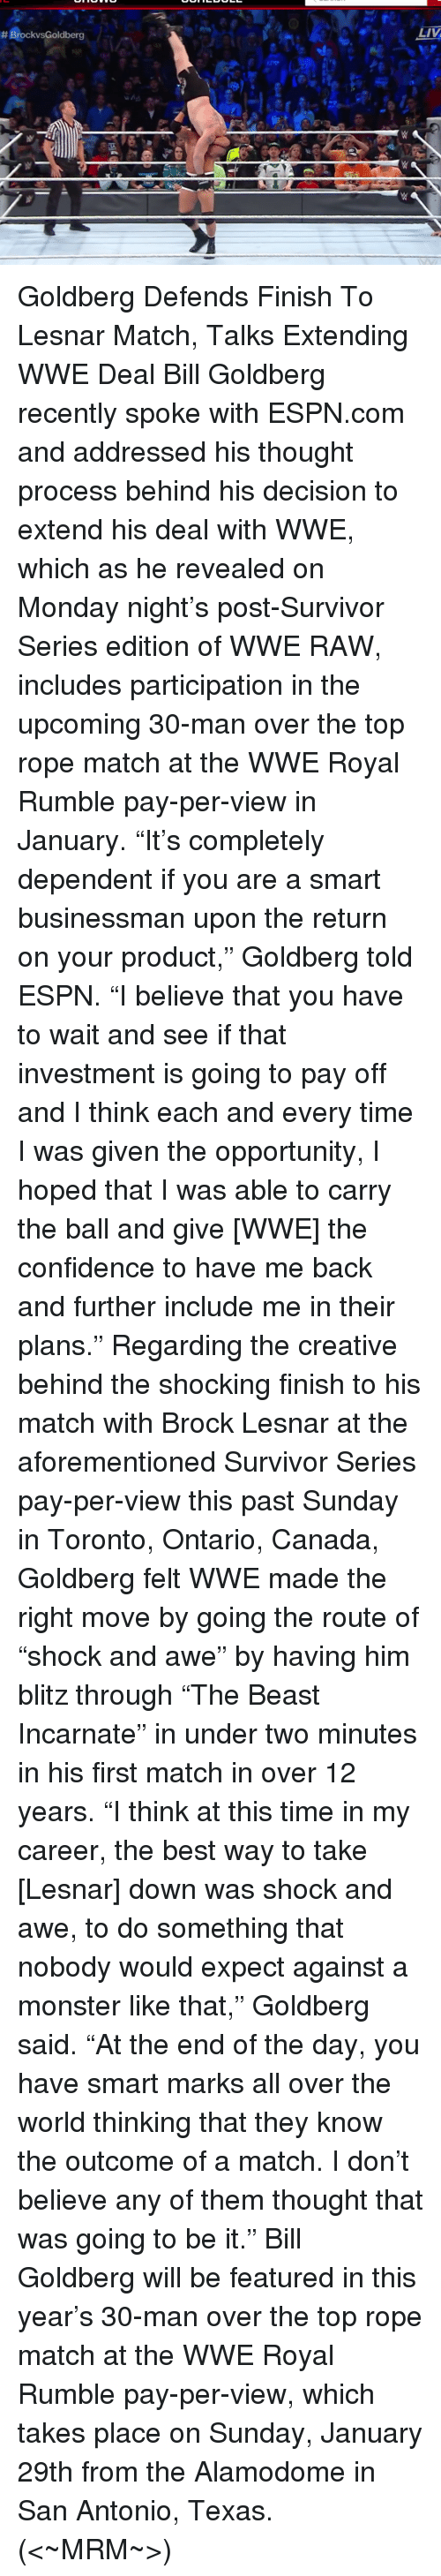 """Confidence, Espn, and Memes: Brockvs Goldberg  LIV Goldberg Defends Finish To Lesnar Match, Talks Extending WWE Deal  Bill Goldberg recently spoke with ESPN.com and addressed his thought process behind his decision to extend his deal with WWE, which as he revealed on Monday night's post-Survivor Series edition of WWE RAW, includes participation in the upcoming 30-man over the top rope match at the WWE Royal Rumble pay-per-view in January.  """"It's completely dependent if you are a smart businessman upon the return on your product,"""" Goldberg told ESPN. """"I believe that you have to wait and see if that investment is going to pay off and I think each and every time I was given the opportunity, I hoped that I was able to carry the ball and give [WWE] the confidence to have me back and further include me in their plans.""""  Regarding the creative behind the shocking finish to his match with Brock Lesnar at the aforementioned Survivor Series pay-per-view this past Sunday in Toronto, Ontario, Canada, Goldberg felt WWE made the right move by going the route of """"shock and awe"""" by having him blitz through """"The Beast Incarnate"""" in under two minutes in his first match in over 12 years.  """"I think at this time in my career, the best way to take [Lesnar] down was shock and awe, to do something that nobody would expect against a monster like that,"""" Goldberg said. """"At the end of the day, you have smart marks all over the world thinking that they know the outcome of a match. I don't believe any of them thought that was going to be it.""""  Bill Goldberg will be featured in this year's 30-man over the top rope match at the WWE Royal Rumble pay-per-view, which takes place on Sunday, January 29th from the Alamodome in San Antonio, Texas.   (<~MRM~>)"""